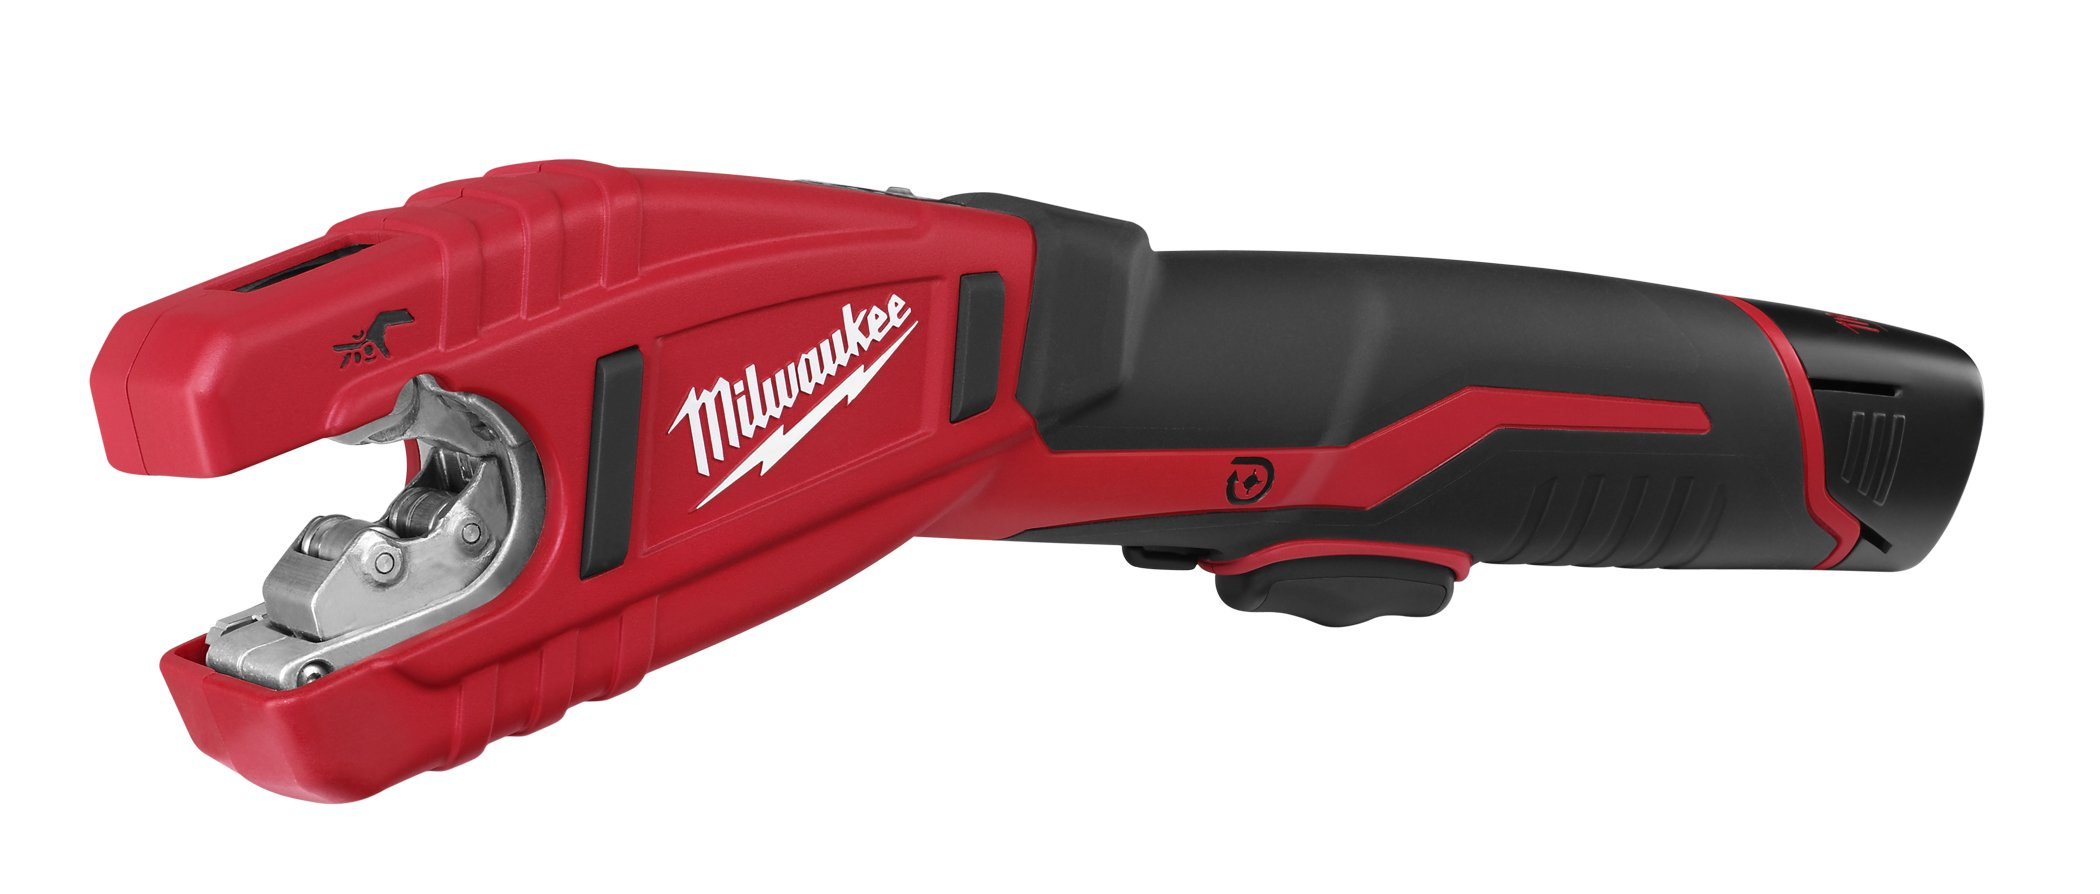 Milwaukee 2471-22 12-Volt Copper Tubing Cutter Kit